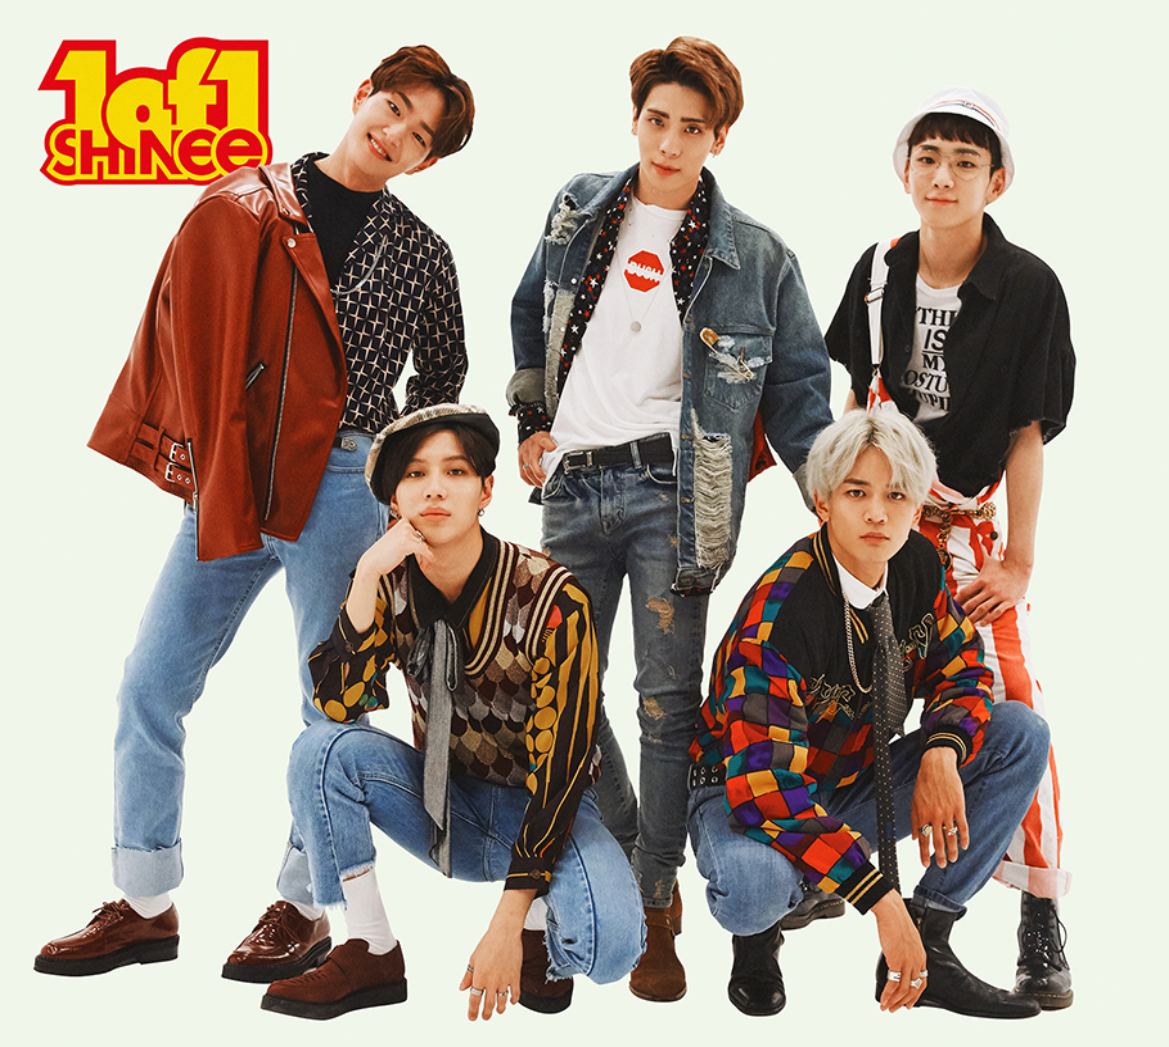 SHINee 1 of 1 promo photo 2.png